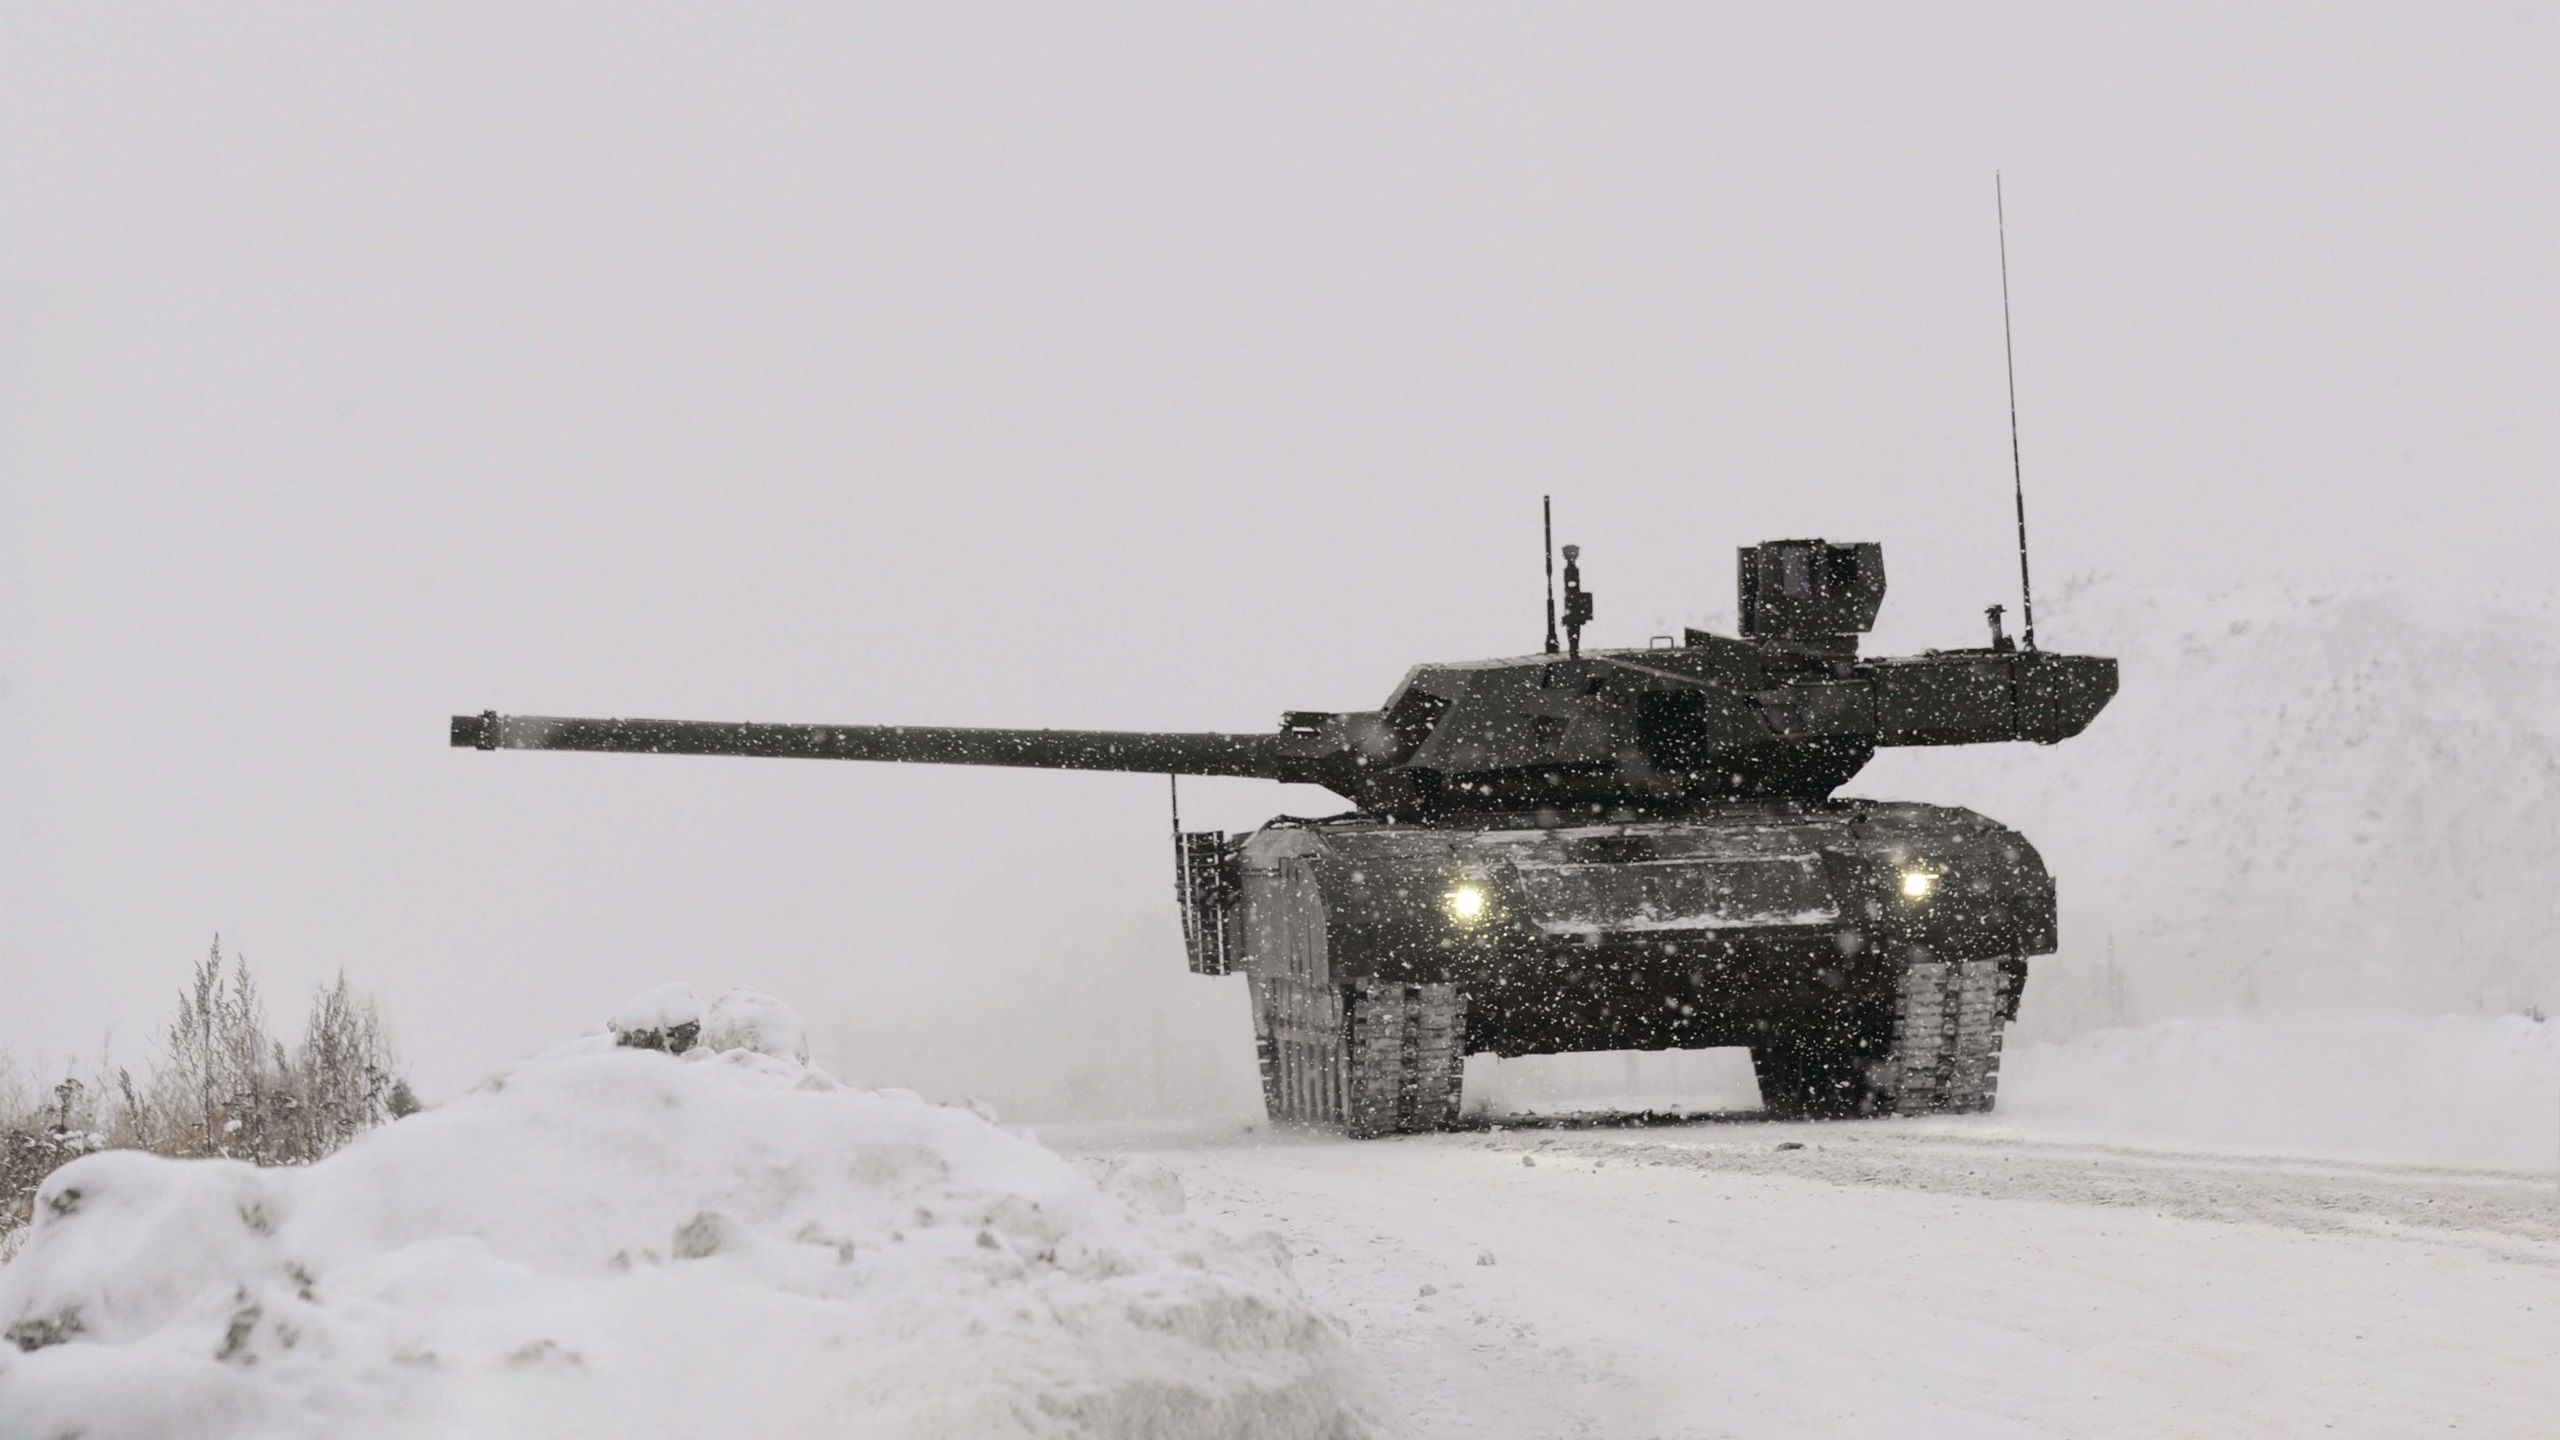 These Are The 10 Reasons Why Russia's New Main Battle Tank The T-14 Armata Has Everyone Worried